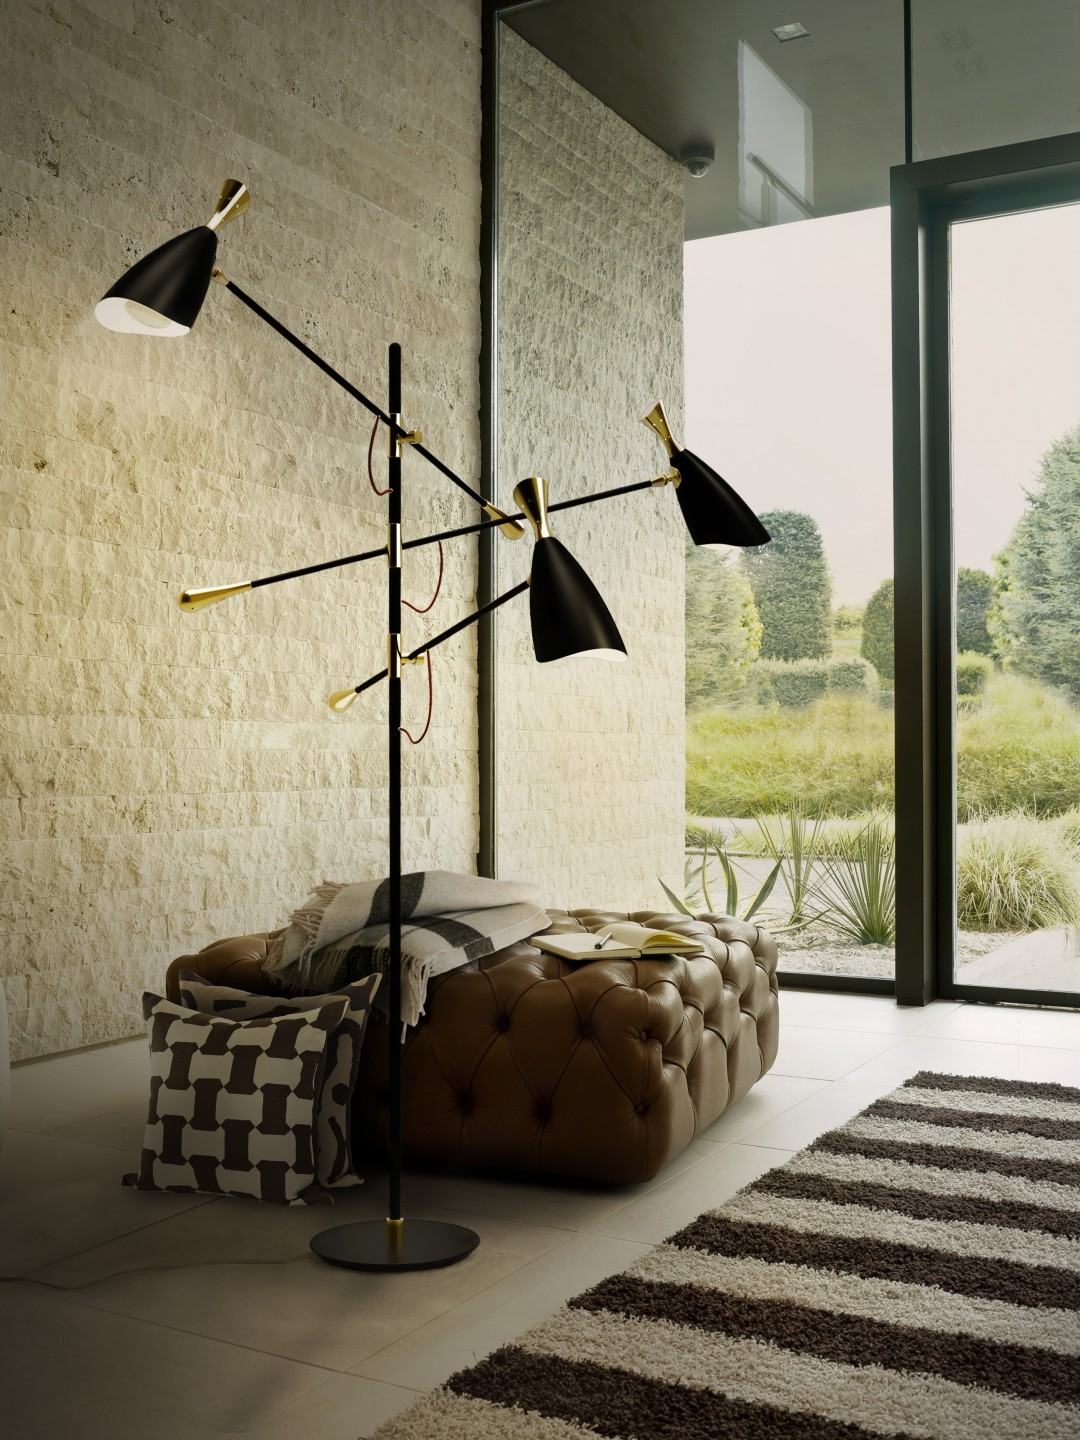 industrial modern home industrial modern home 4 Mid-Century Floor Lamps For Your Industrial Modern Home! duke floor ambience 05 HR16b9f4fc41b4ee3f151ef33c827e75c9